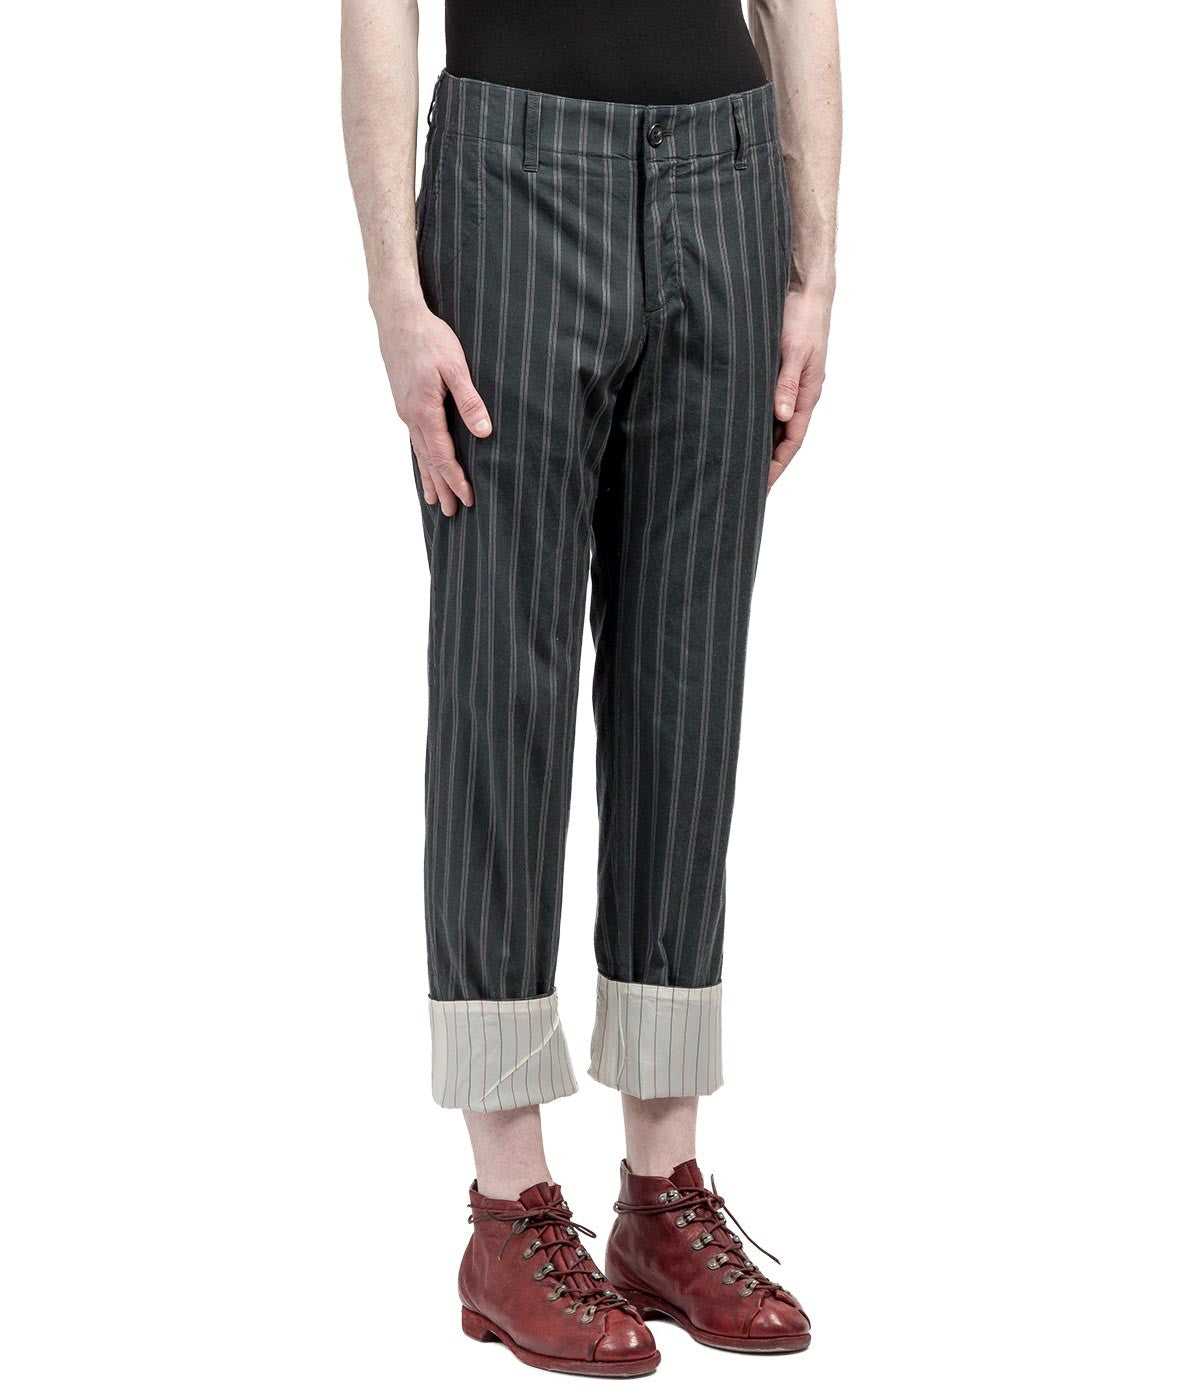 Black Pinstripe Pants